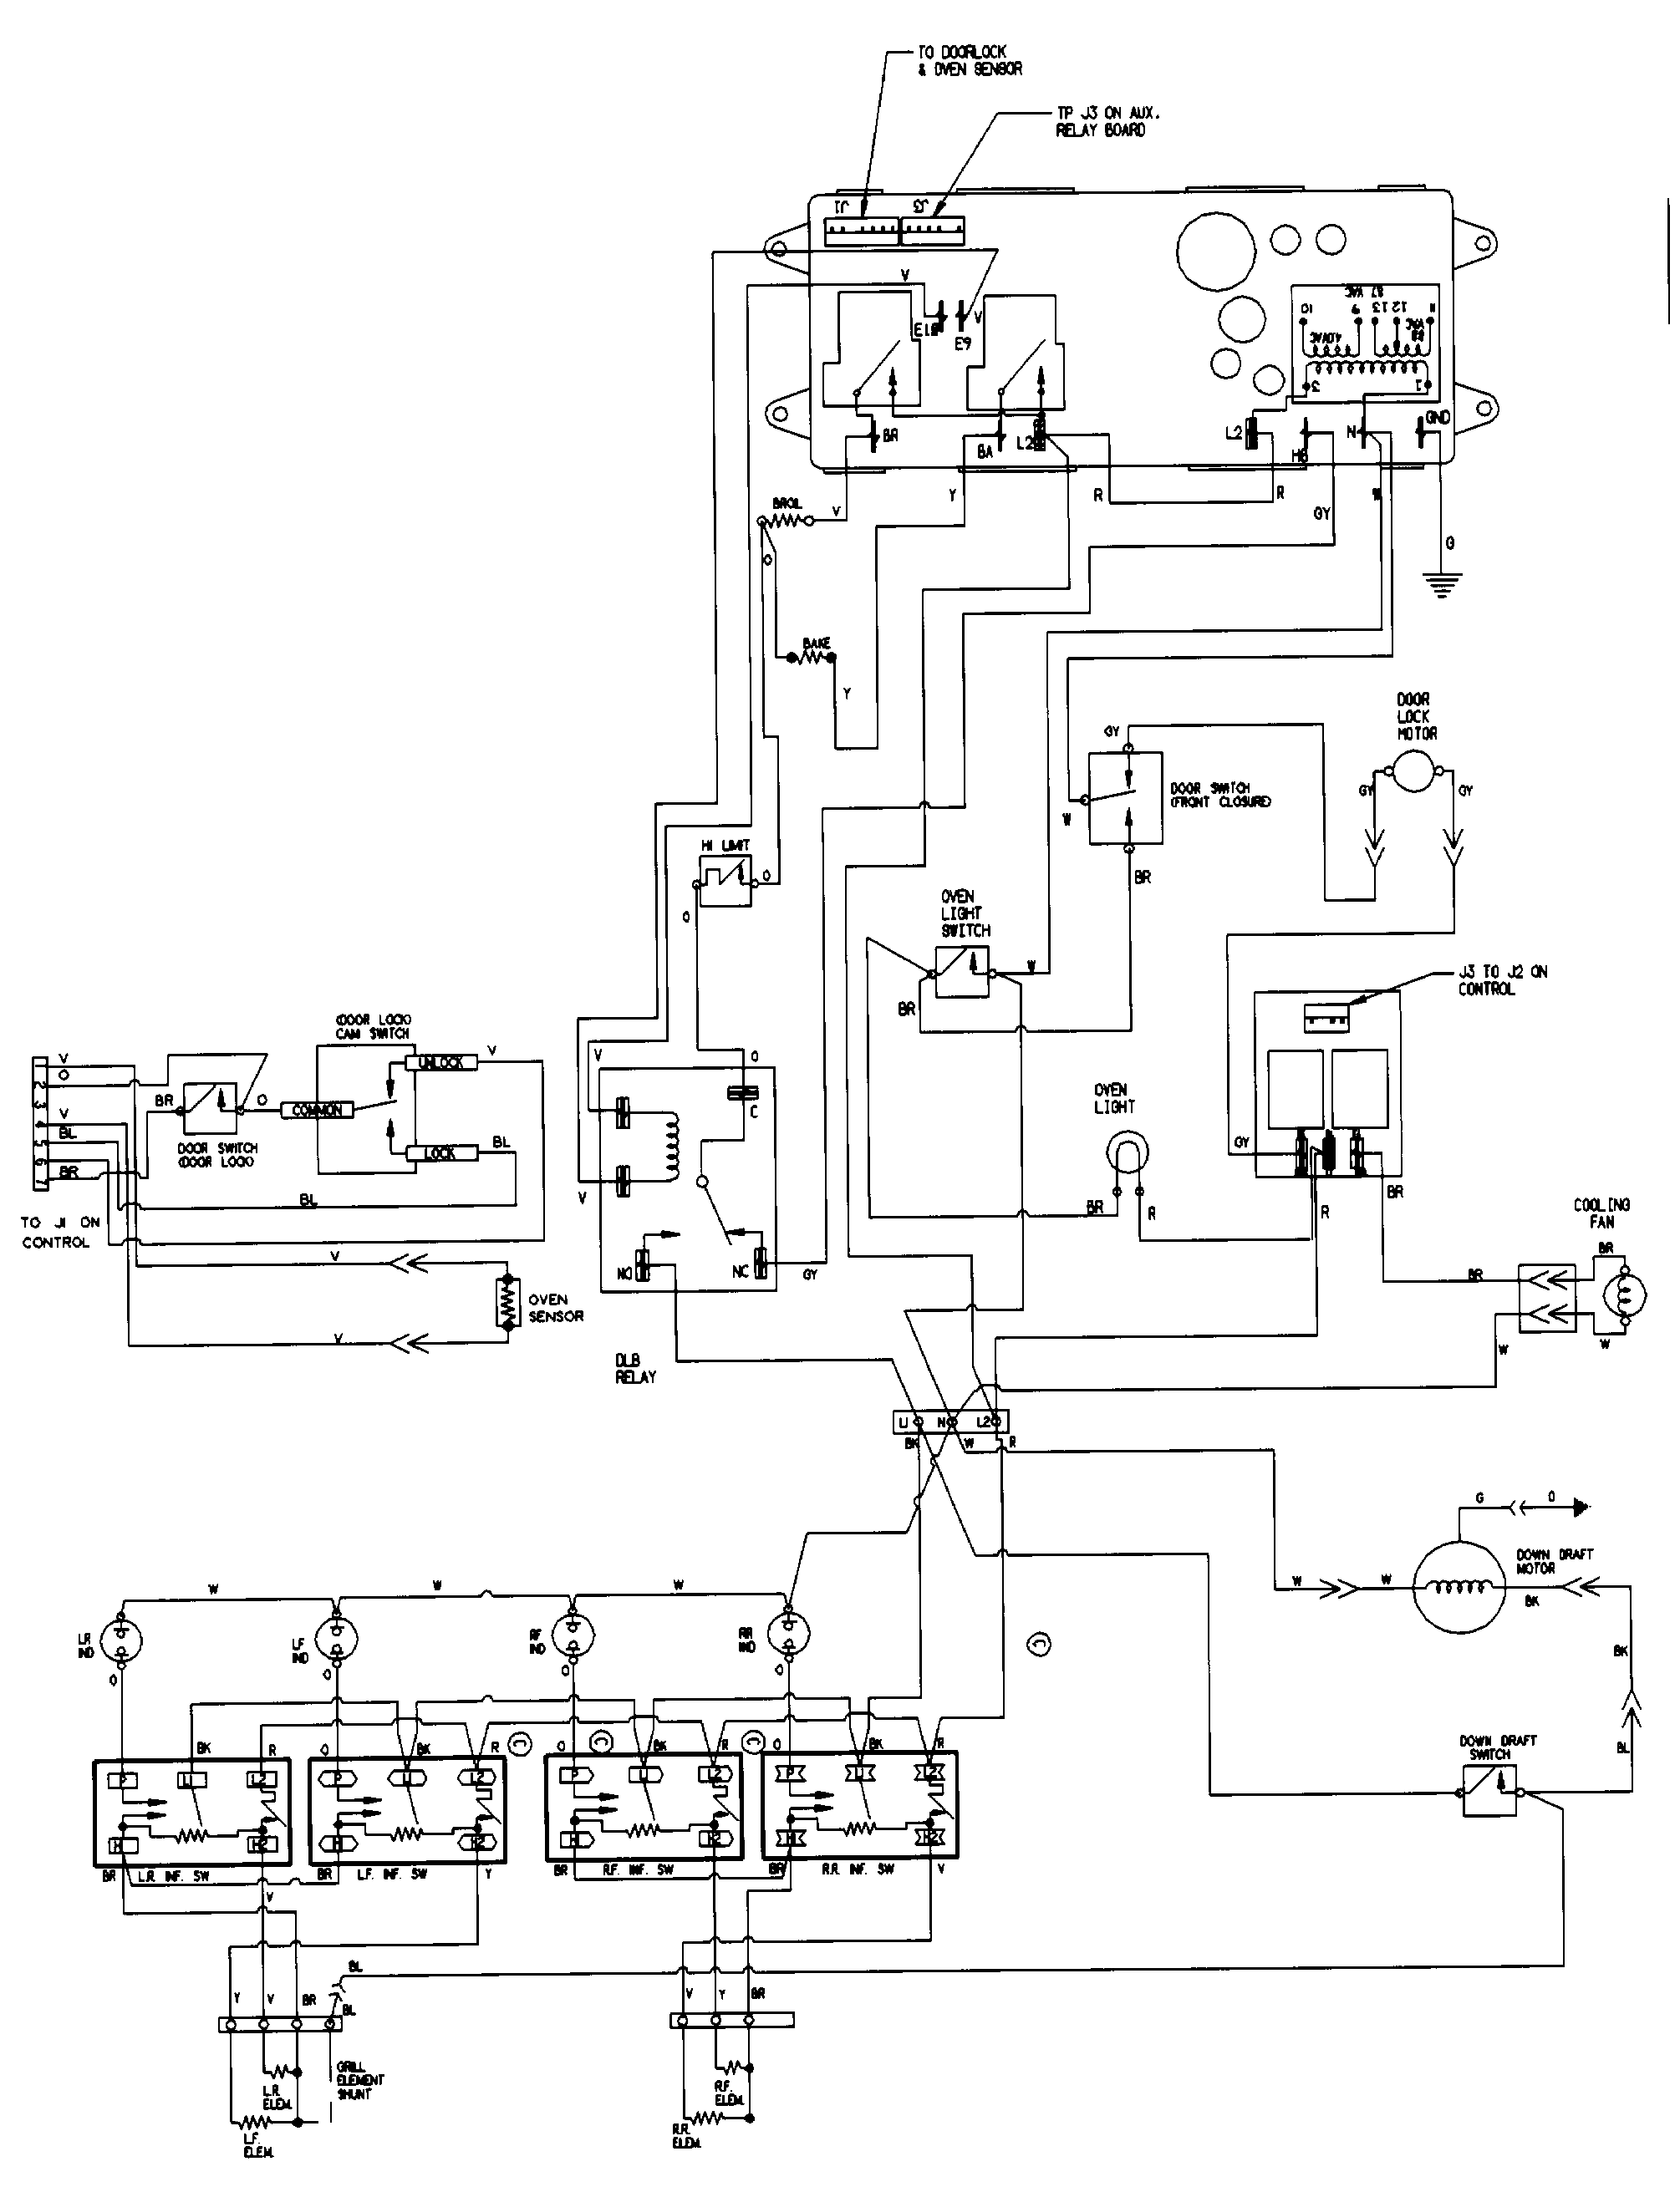 maytag sve47100 electric slide-in range timer - stove ... electrolux wall oven wiring diagram